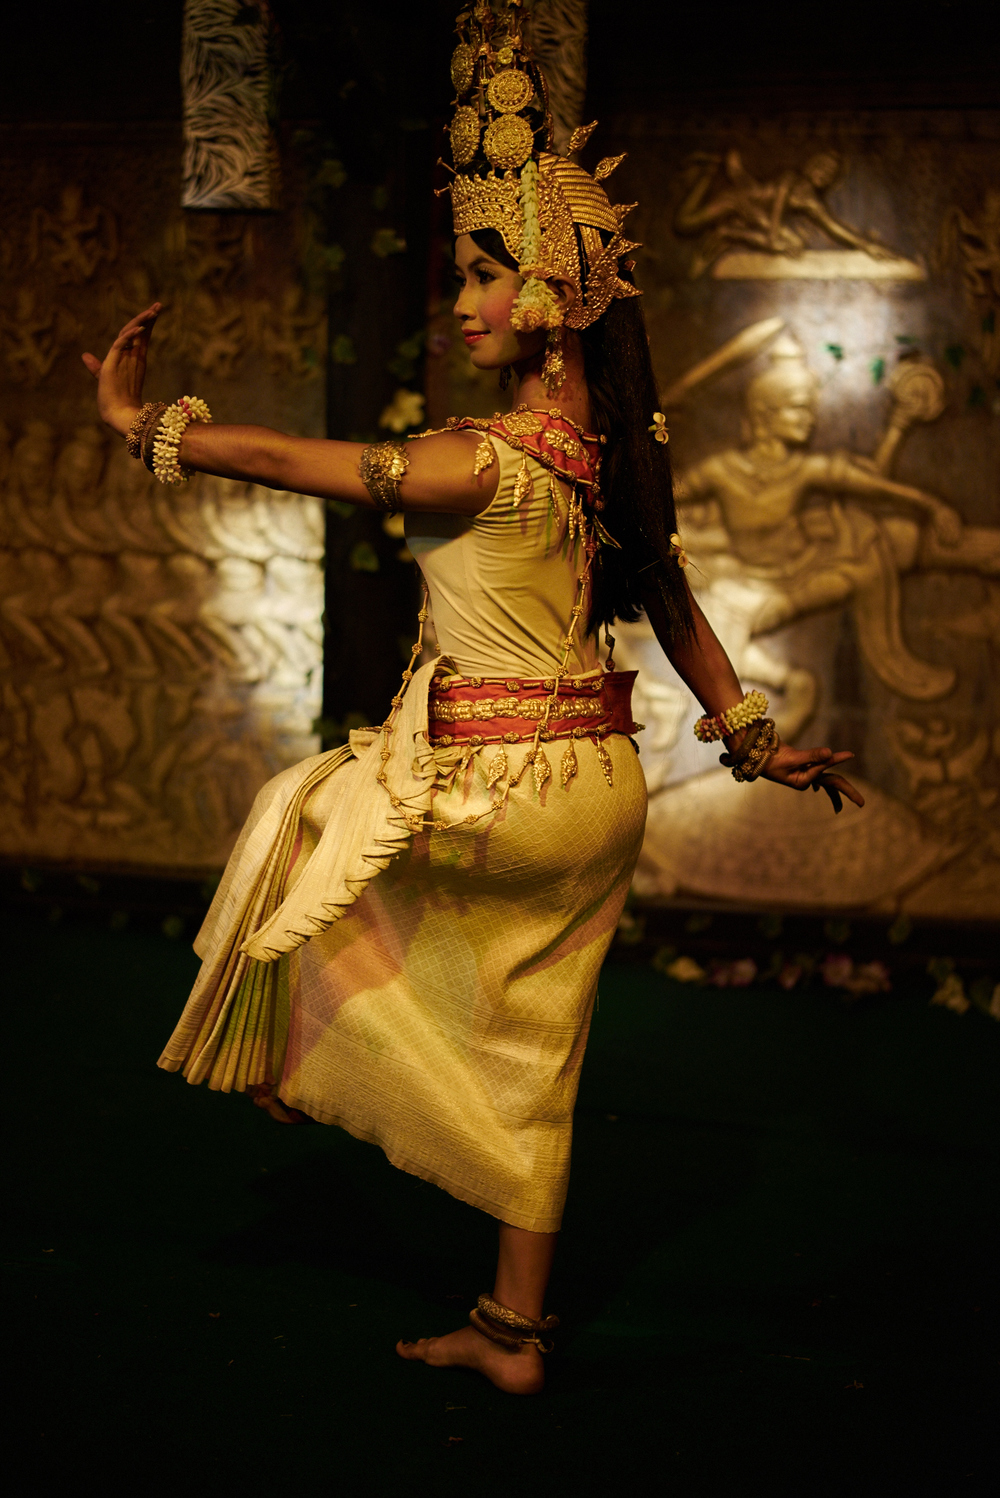 the beautiful Apsara